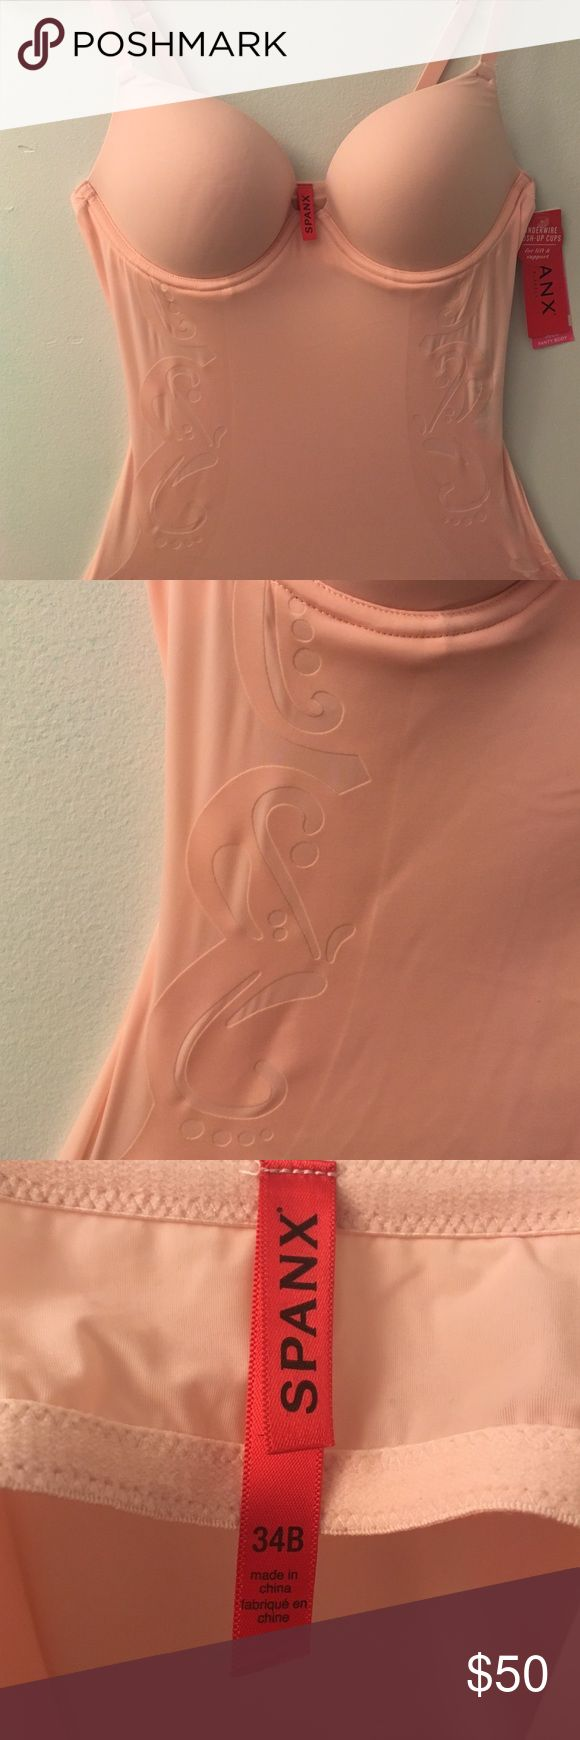 SPANX body suit Light pink Spanx bodysuit. Pretty cutout design along sides. Bra size 34 B. Tags still on, never been worn! SPANX Intimates & Sleepwear Chemises & Slips